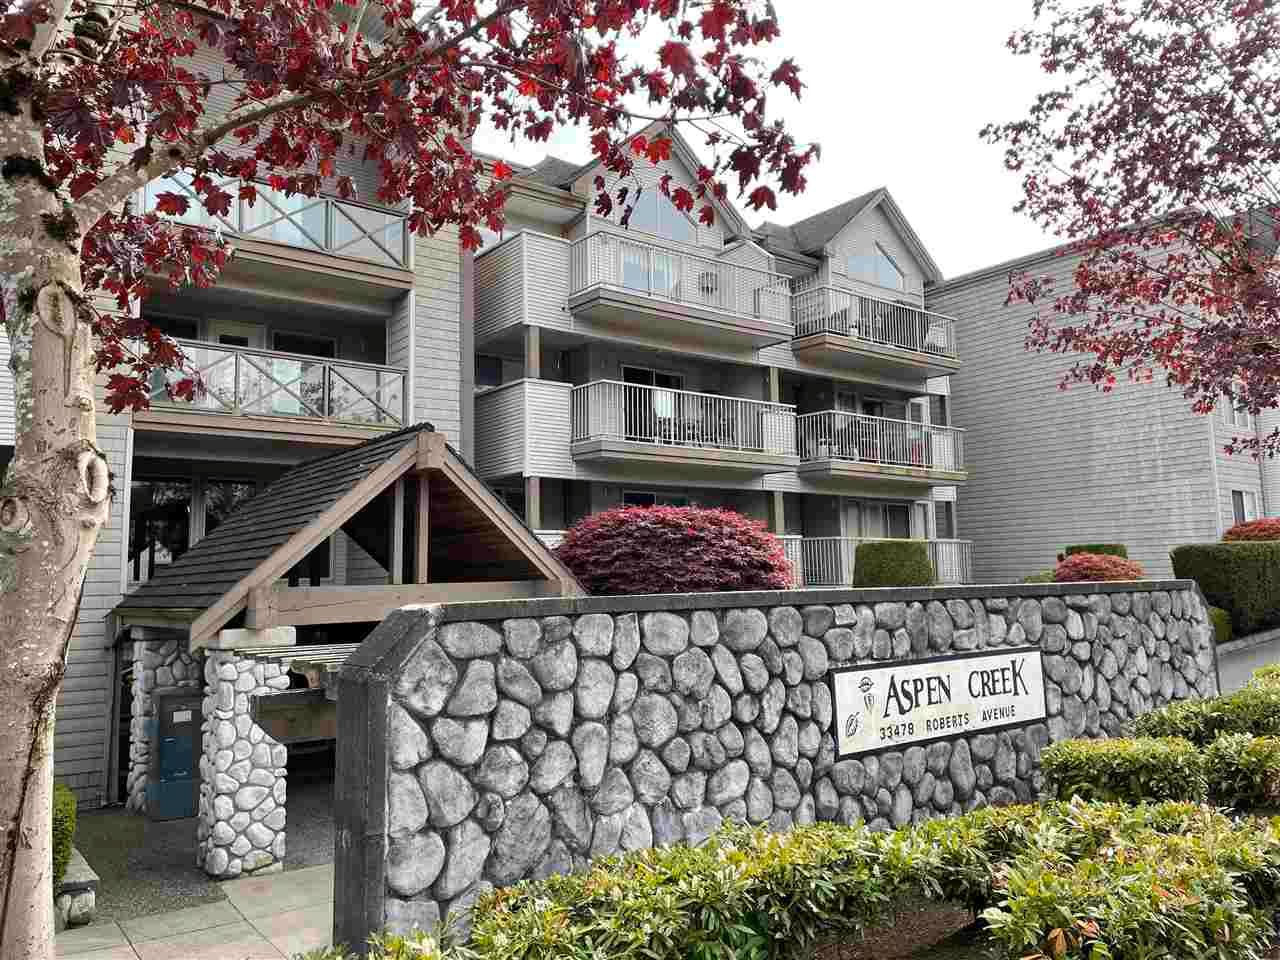 """Main Photo: 113 33478 ROBERTS Avenue in Abbotsford: Central Abbotsford Condo for sale in """"Aspin Creek"""" : MLS®# R2573470"""